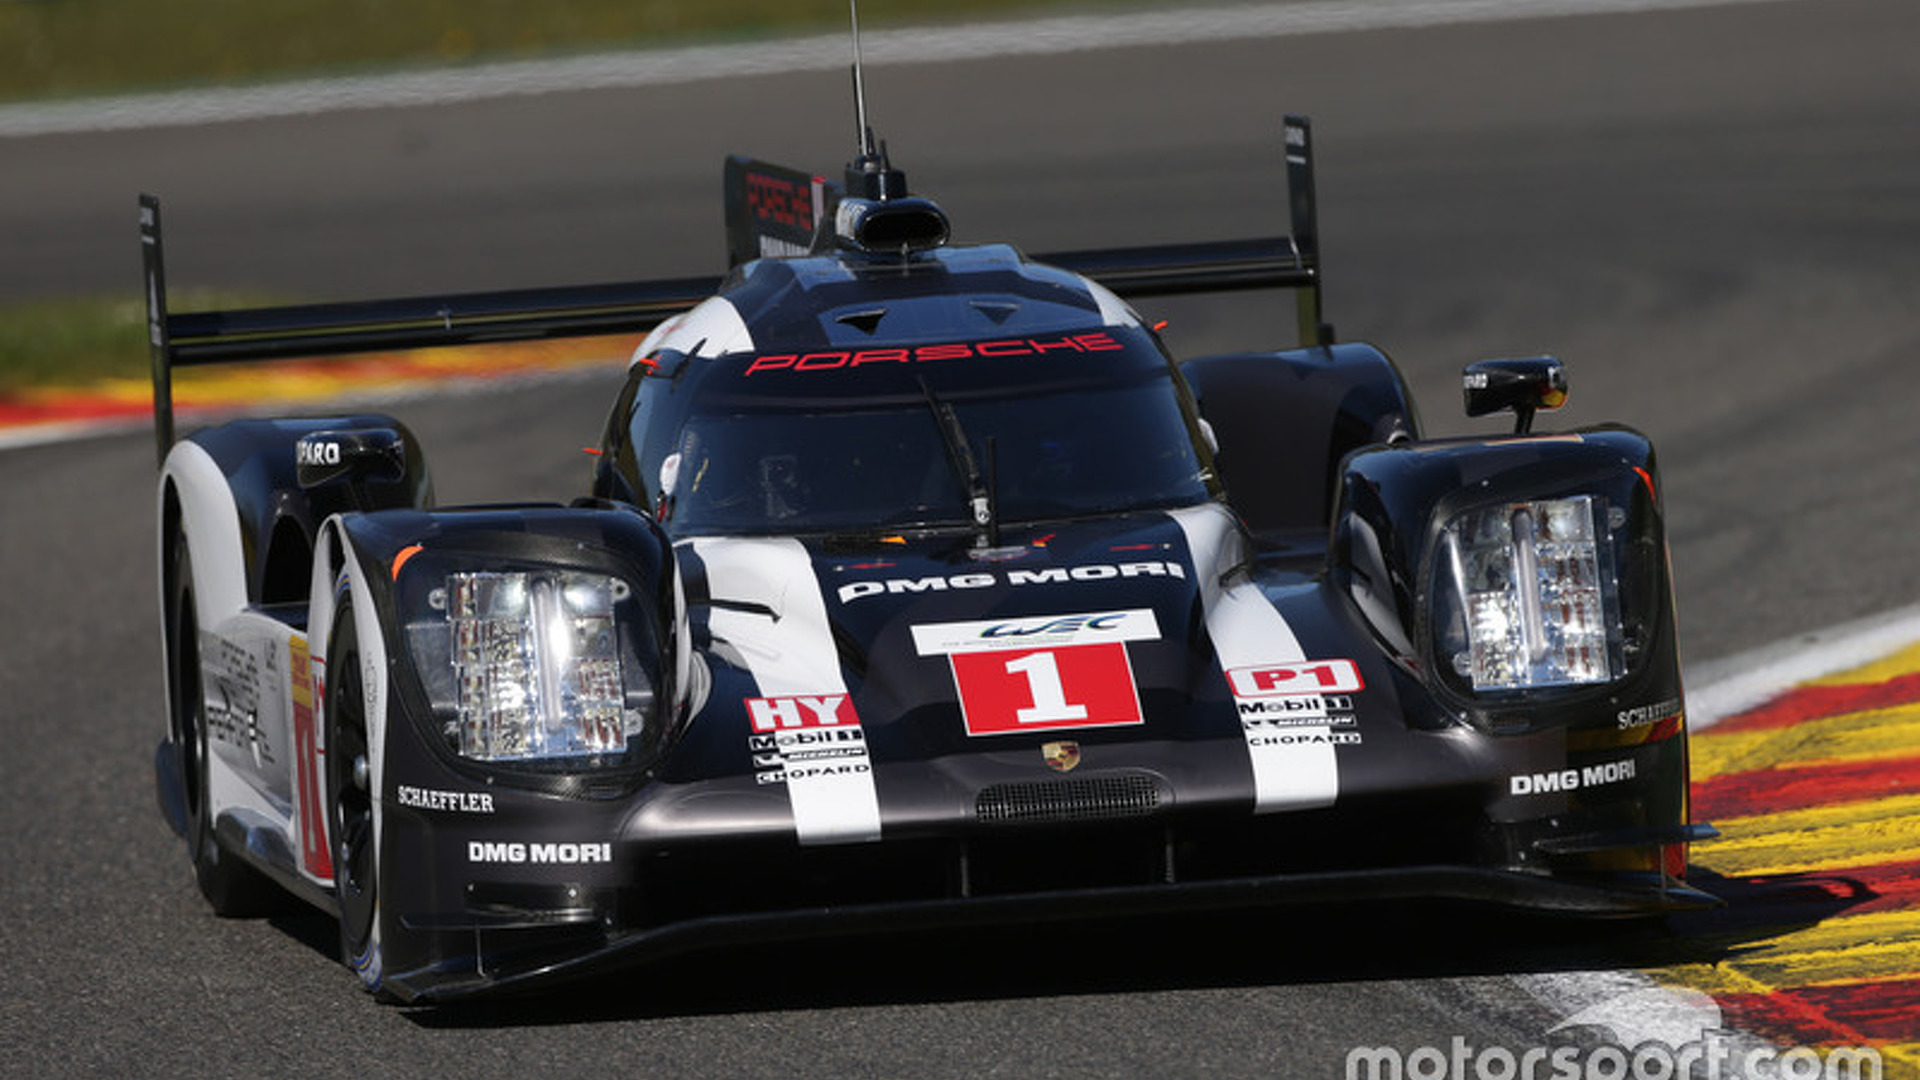 Spa WEC: Porsche dominates to lock out front row